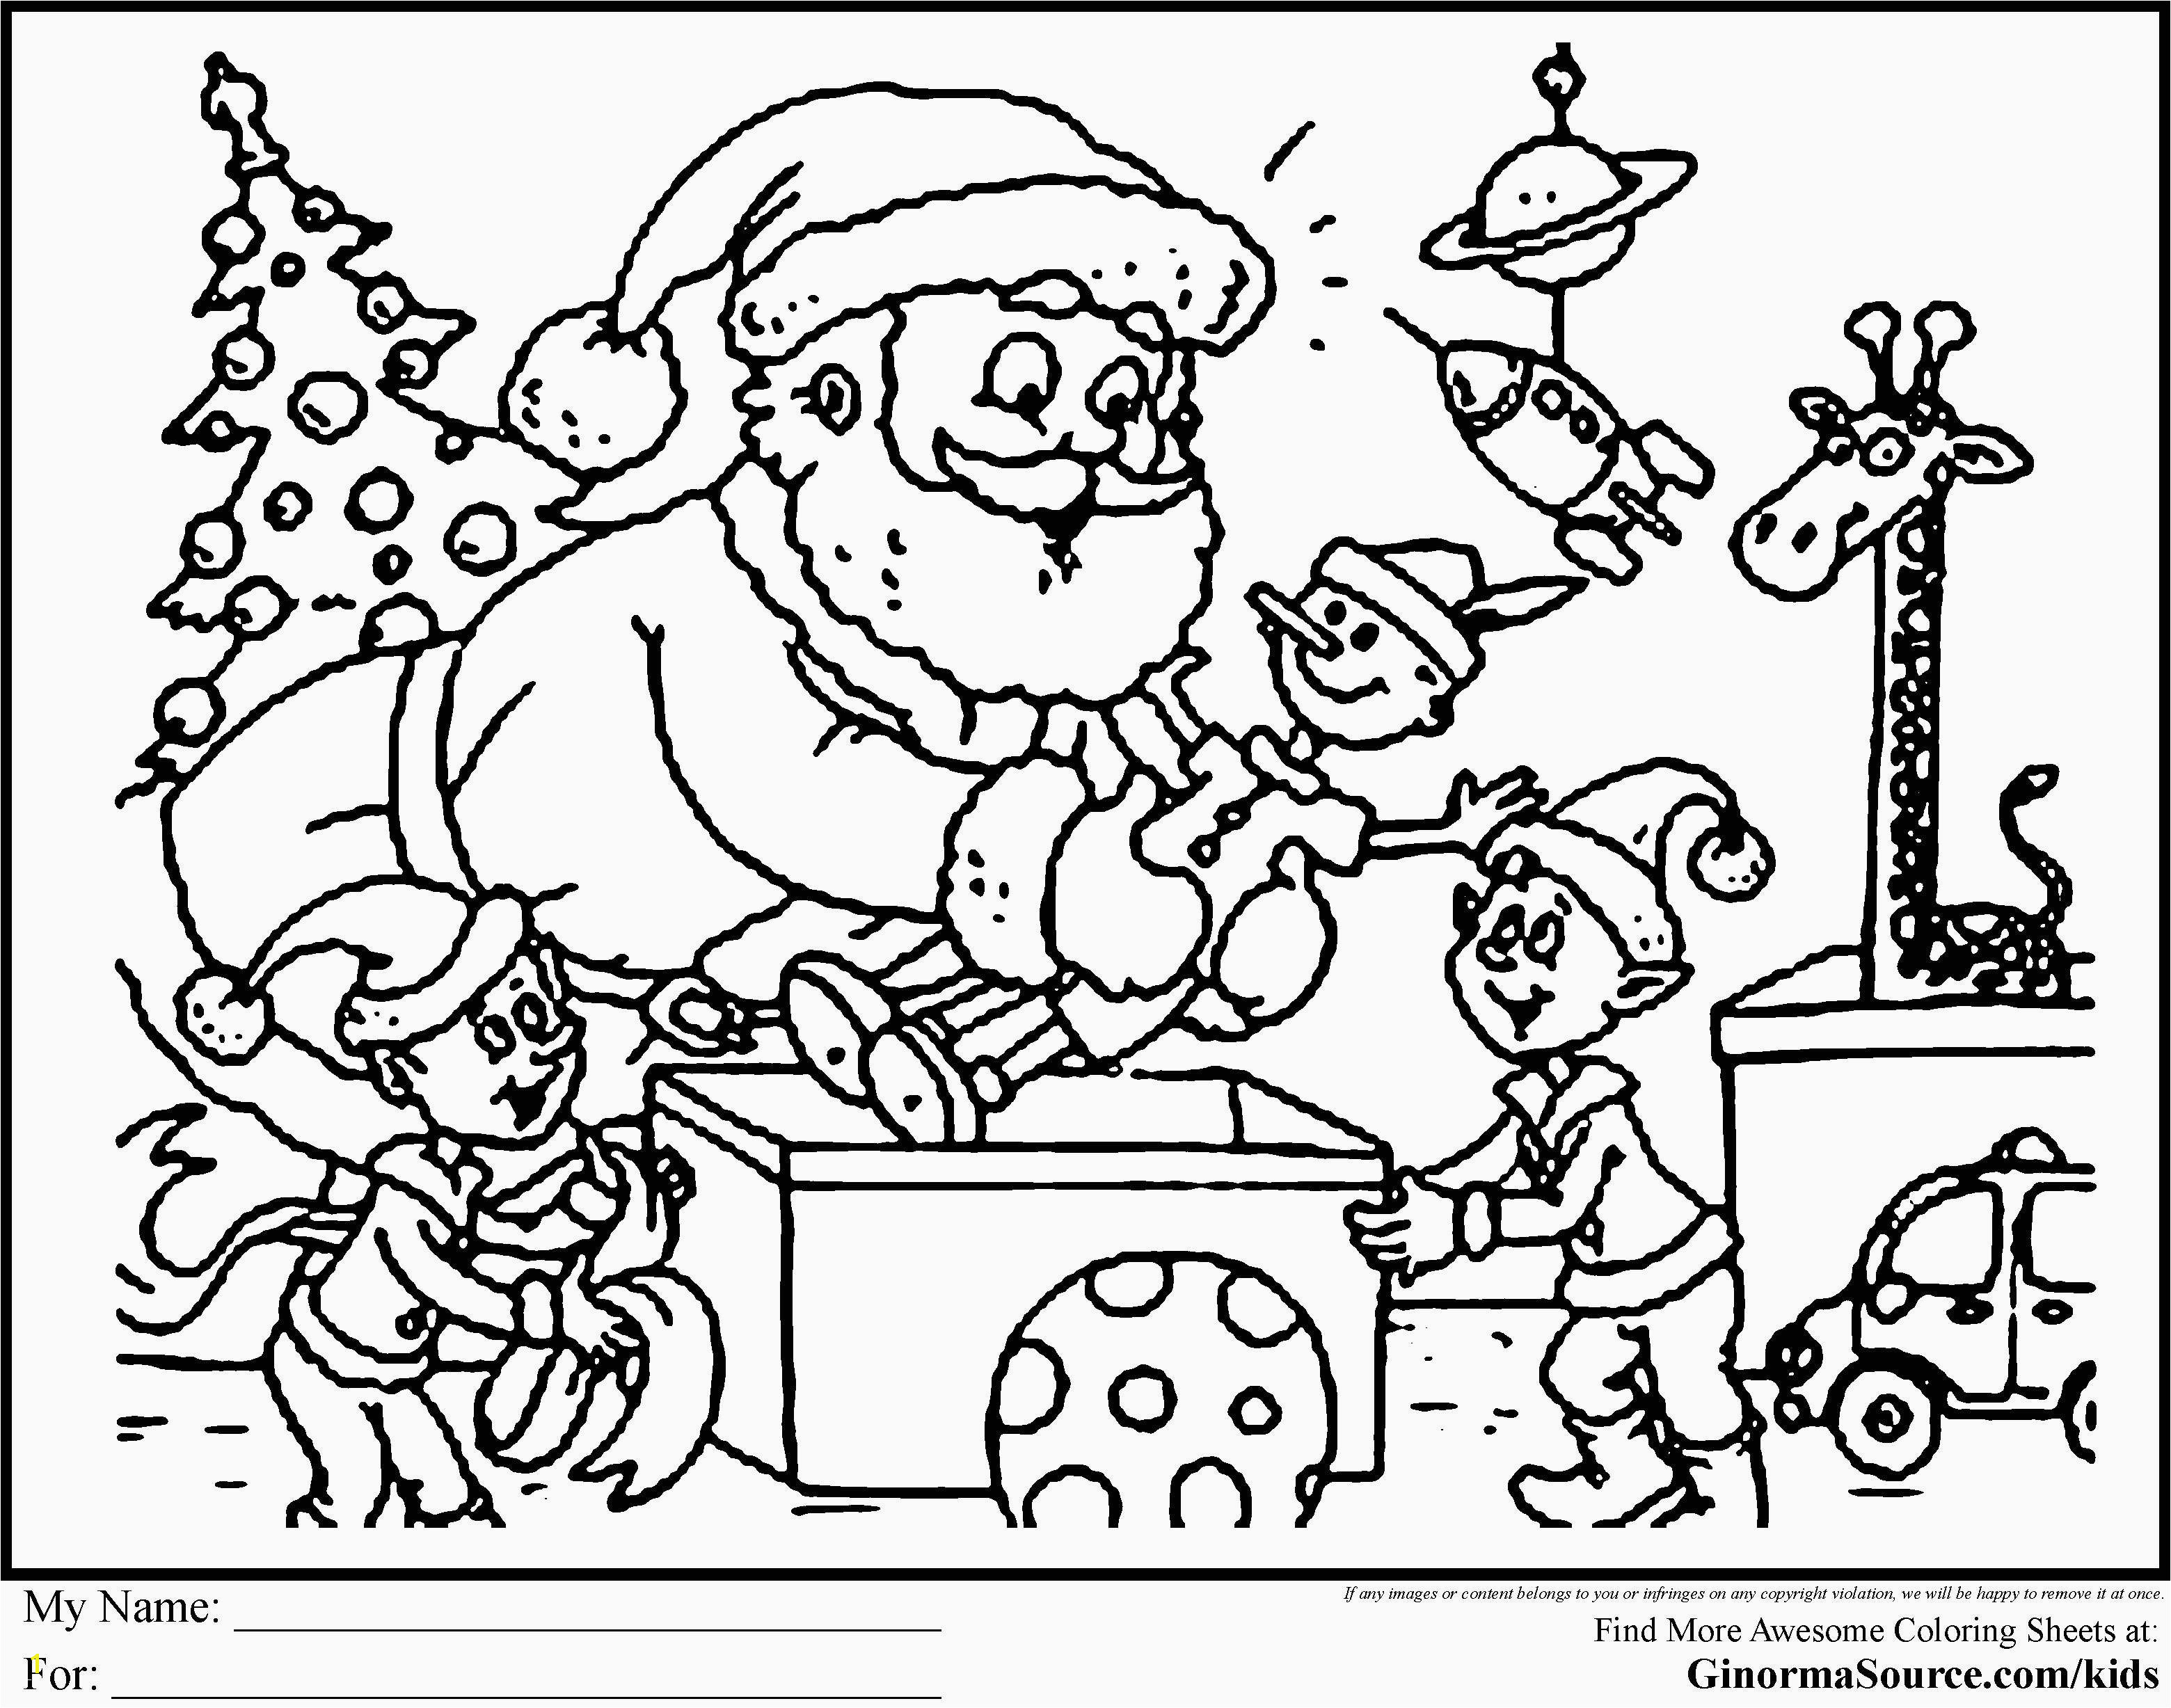 Dog Man Unleashed Coloring Pages Luxury Dog Man Unleashed Coloring Pages Coloring Pages Coloring Pages